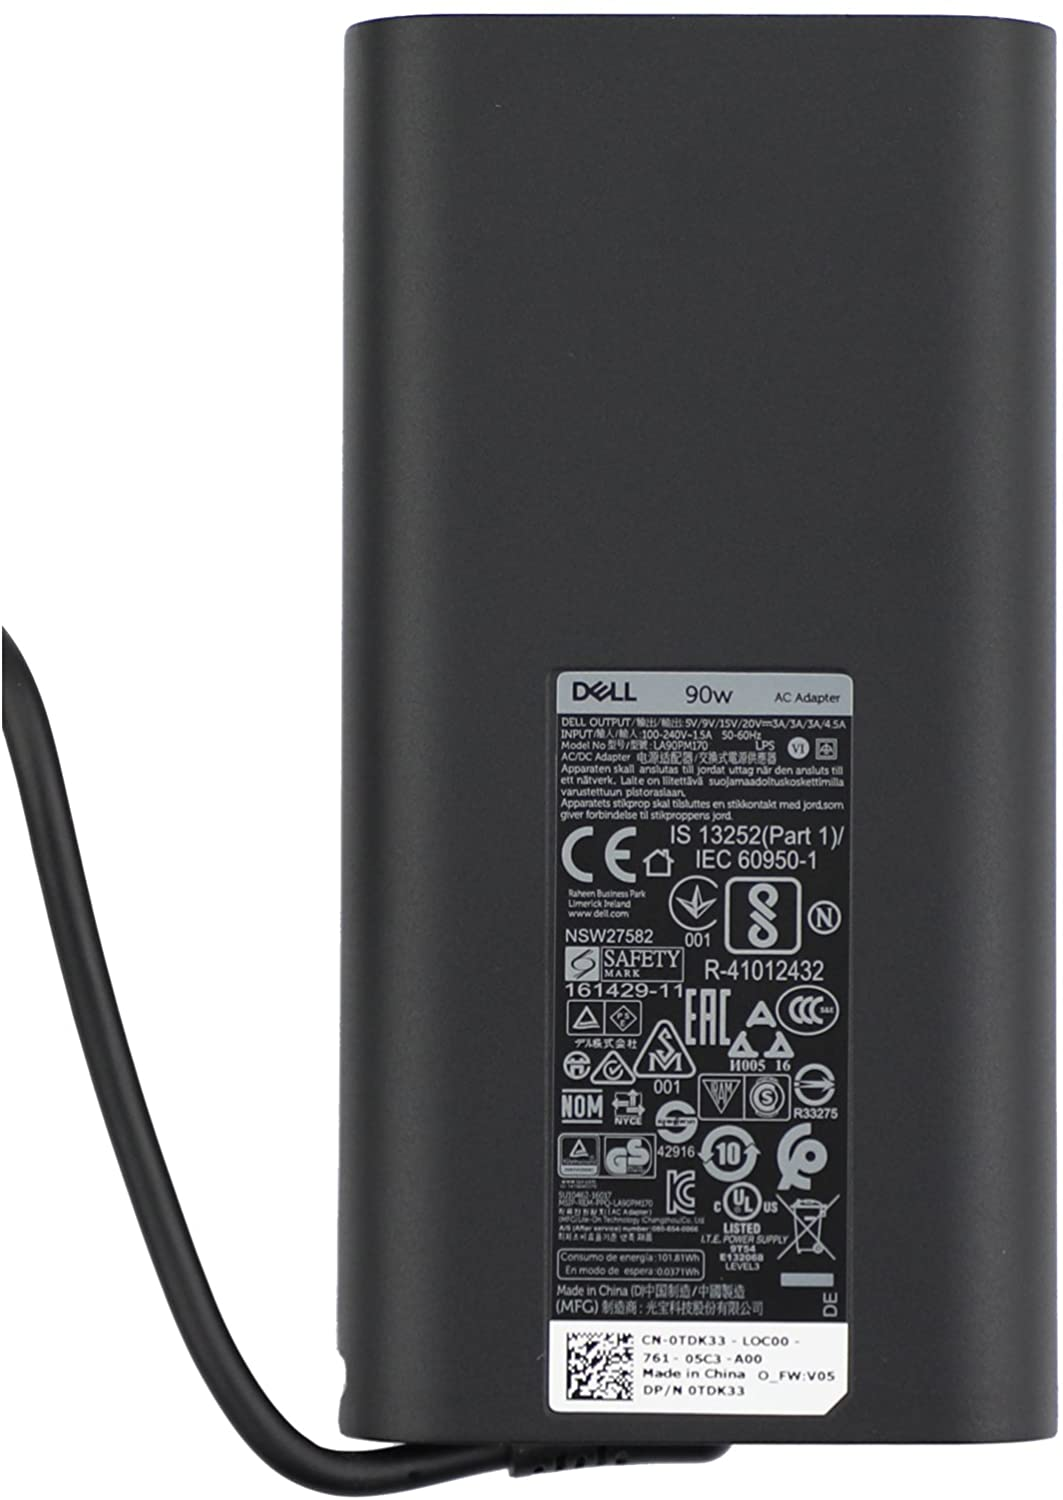 New Original Dell LA90PM170 USB-C AC Adapter TDK33 0TDK33 20v/12v/9V/5v-4.5A/3A/3A/3A, Original 90watt Type-C Charger, LA90PM170,for Latitude 5280 5480 5580 7280 7480 7380